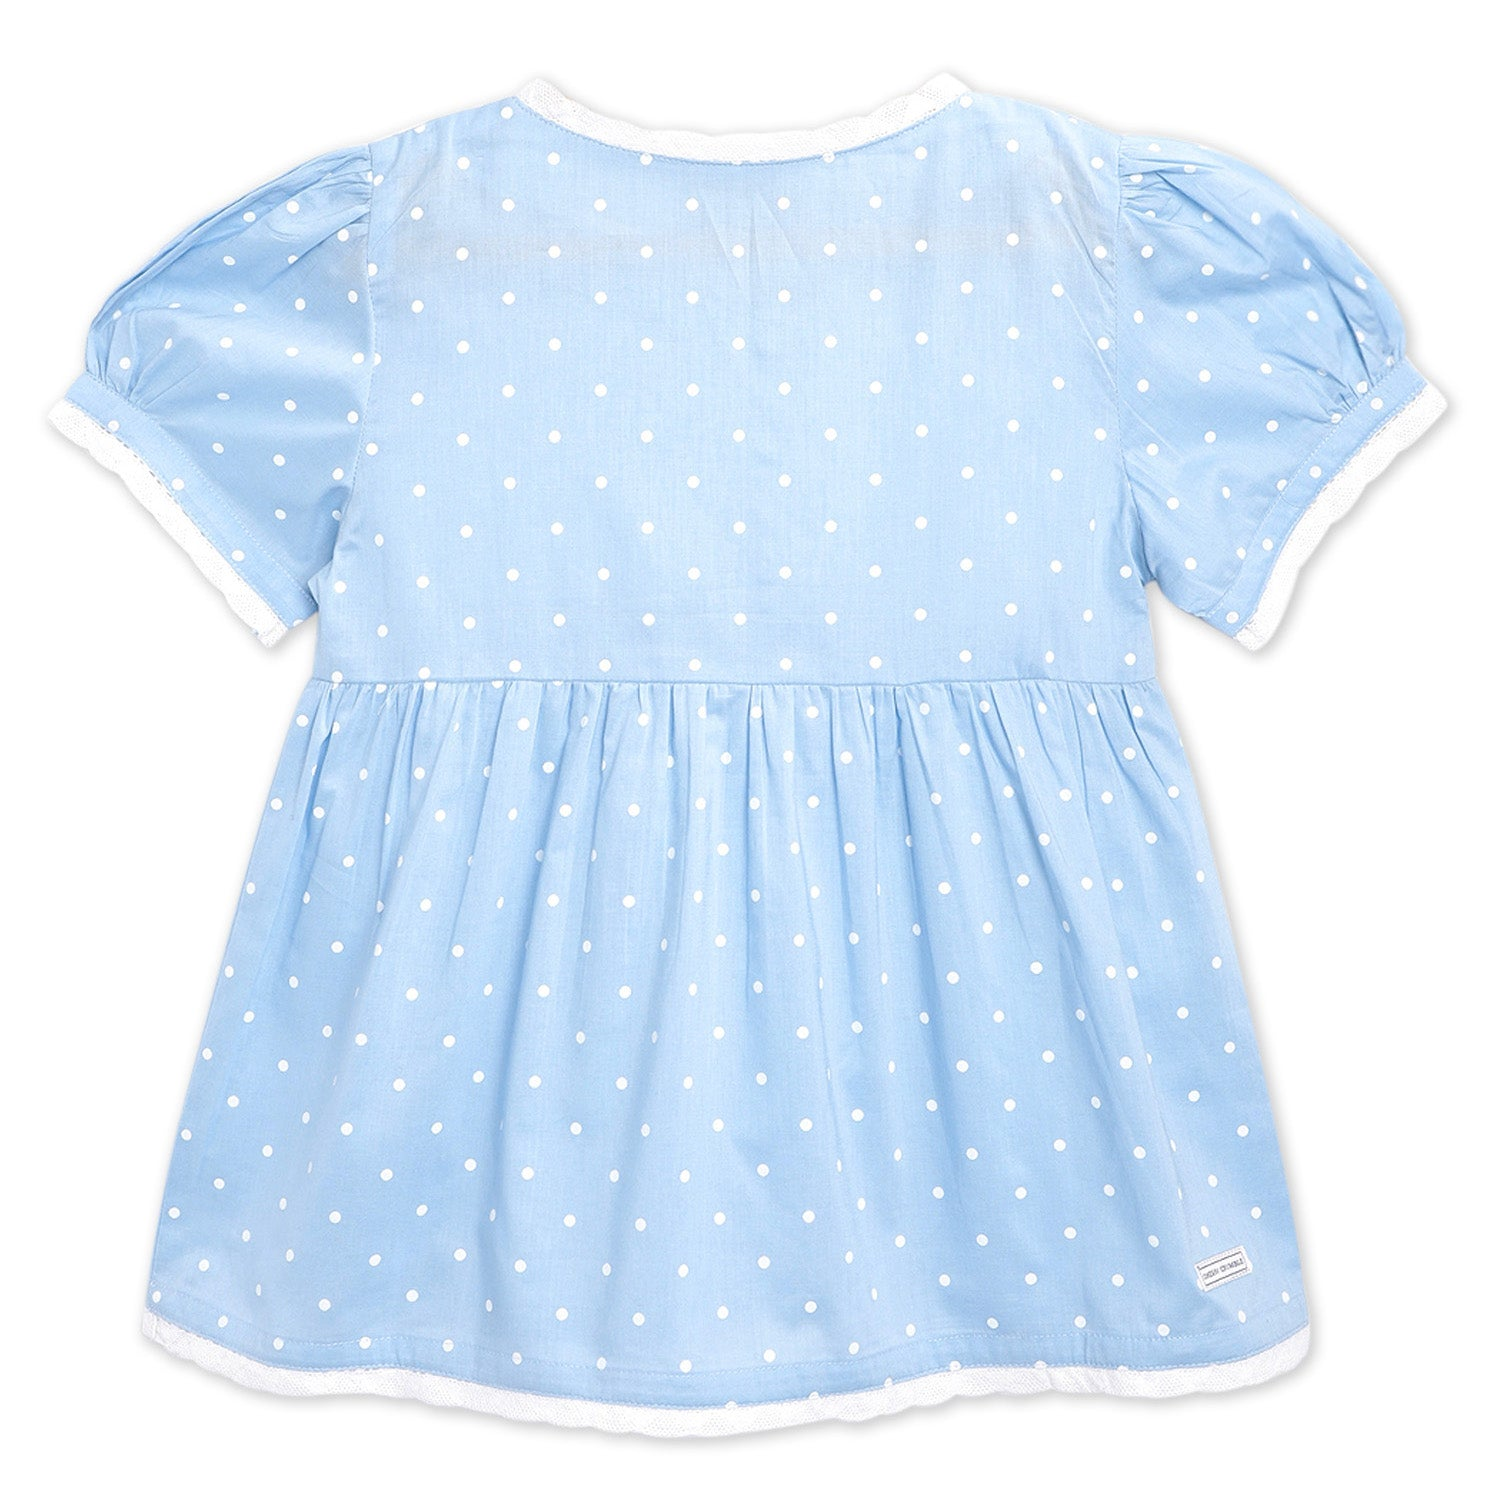 kids-cloudy-nightsuit-ws-gnsuit-3318sky